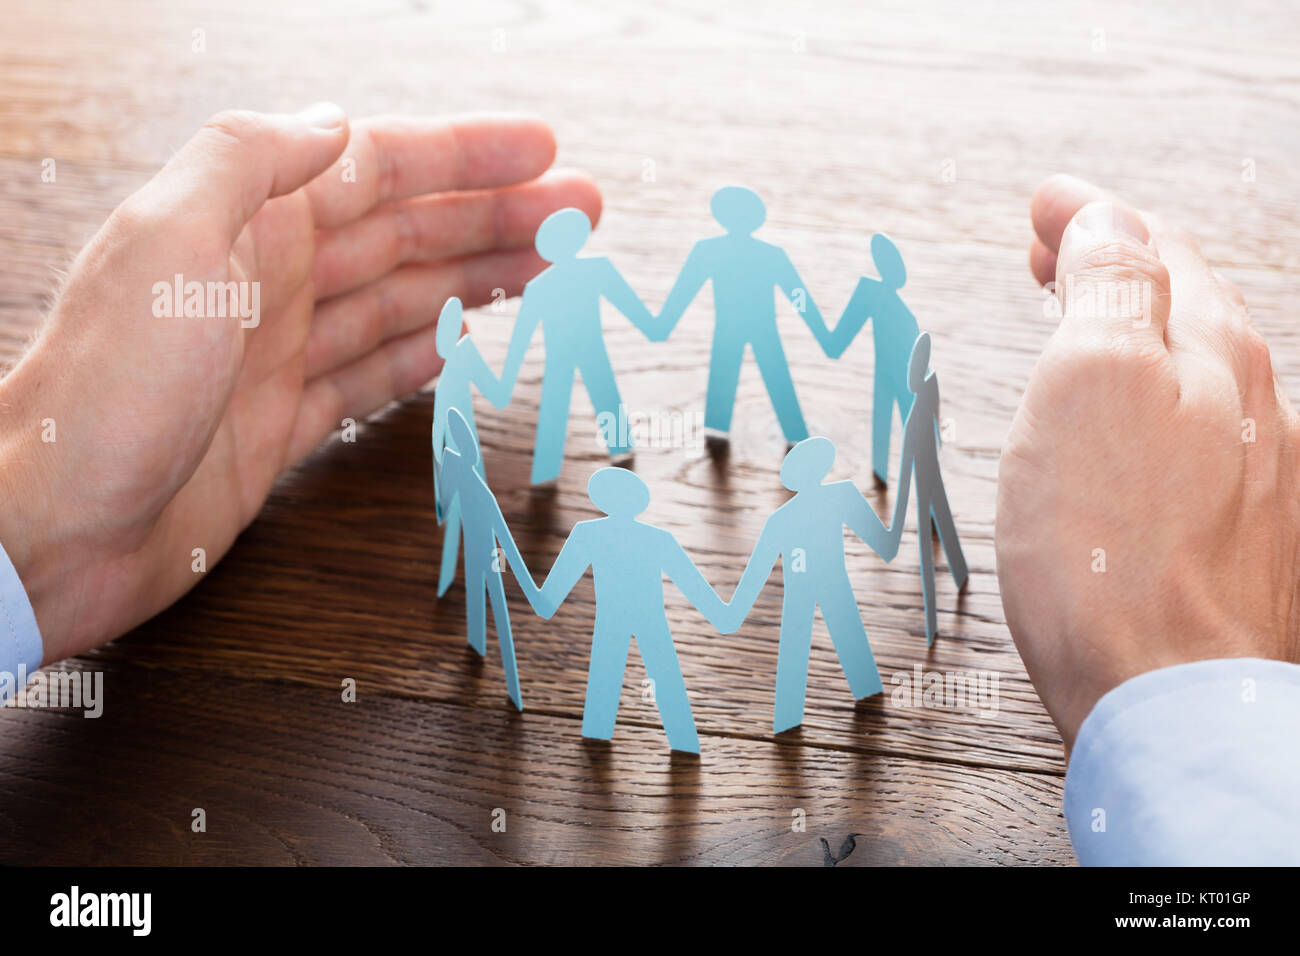 Businessperson Protecting Cut-out Figures Stock Photo